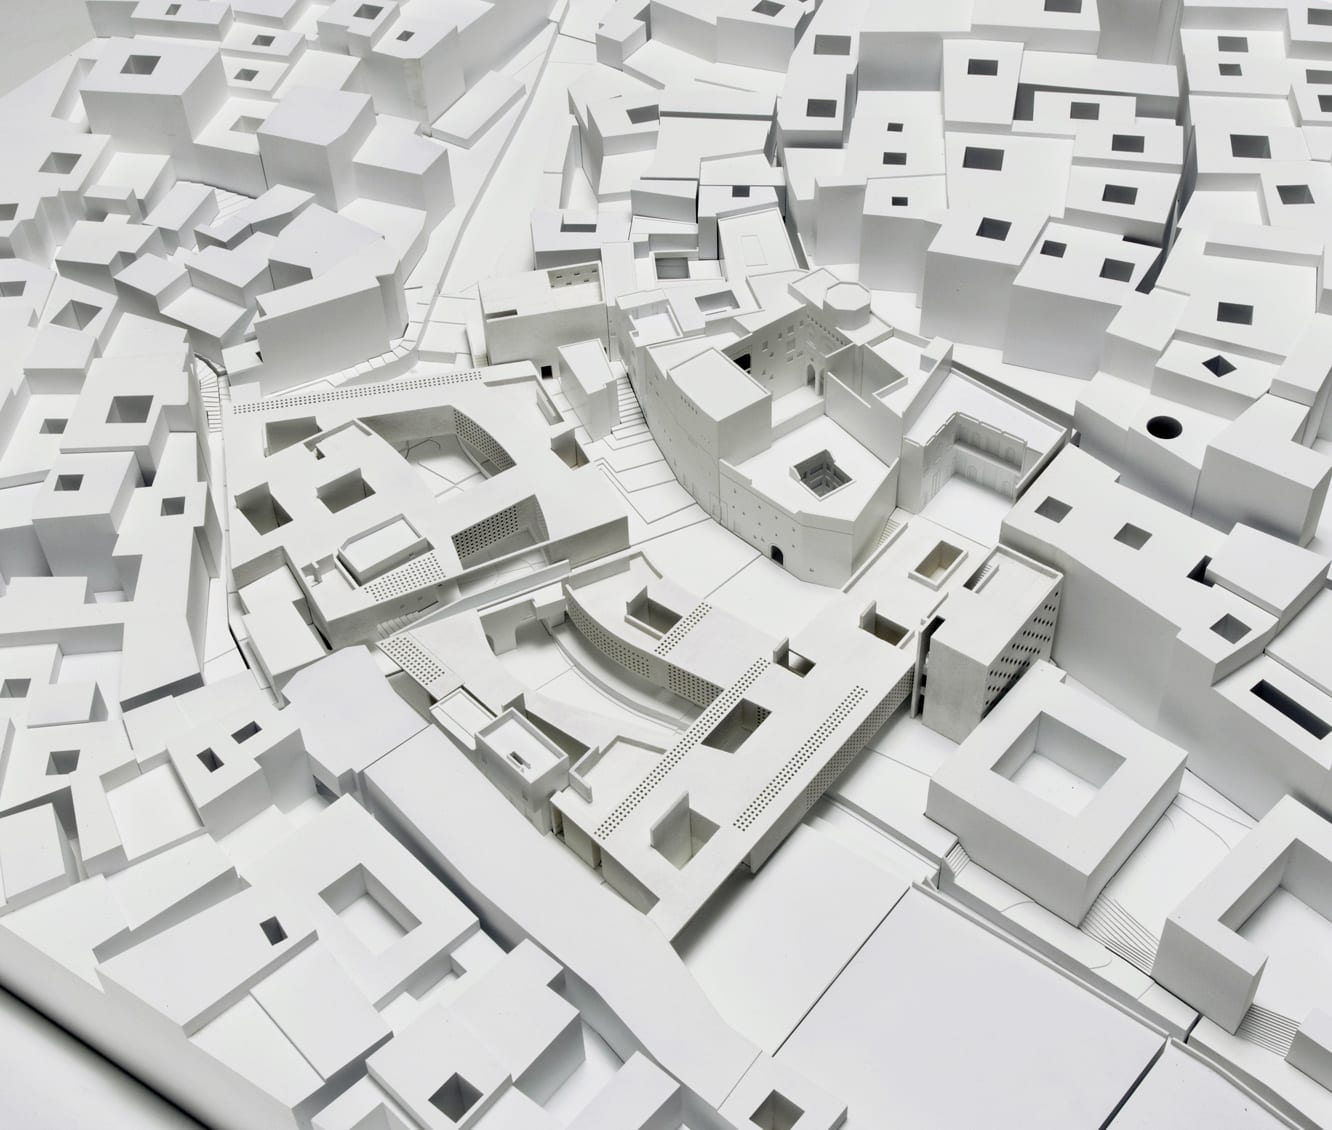 fes_model_5006_2_kolb_hader_architekten_kubik_studio